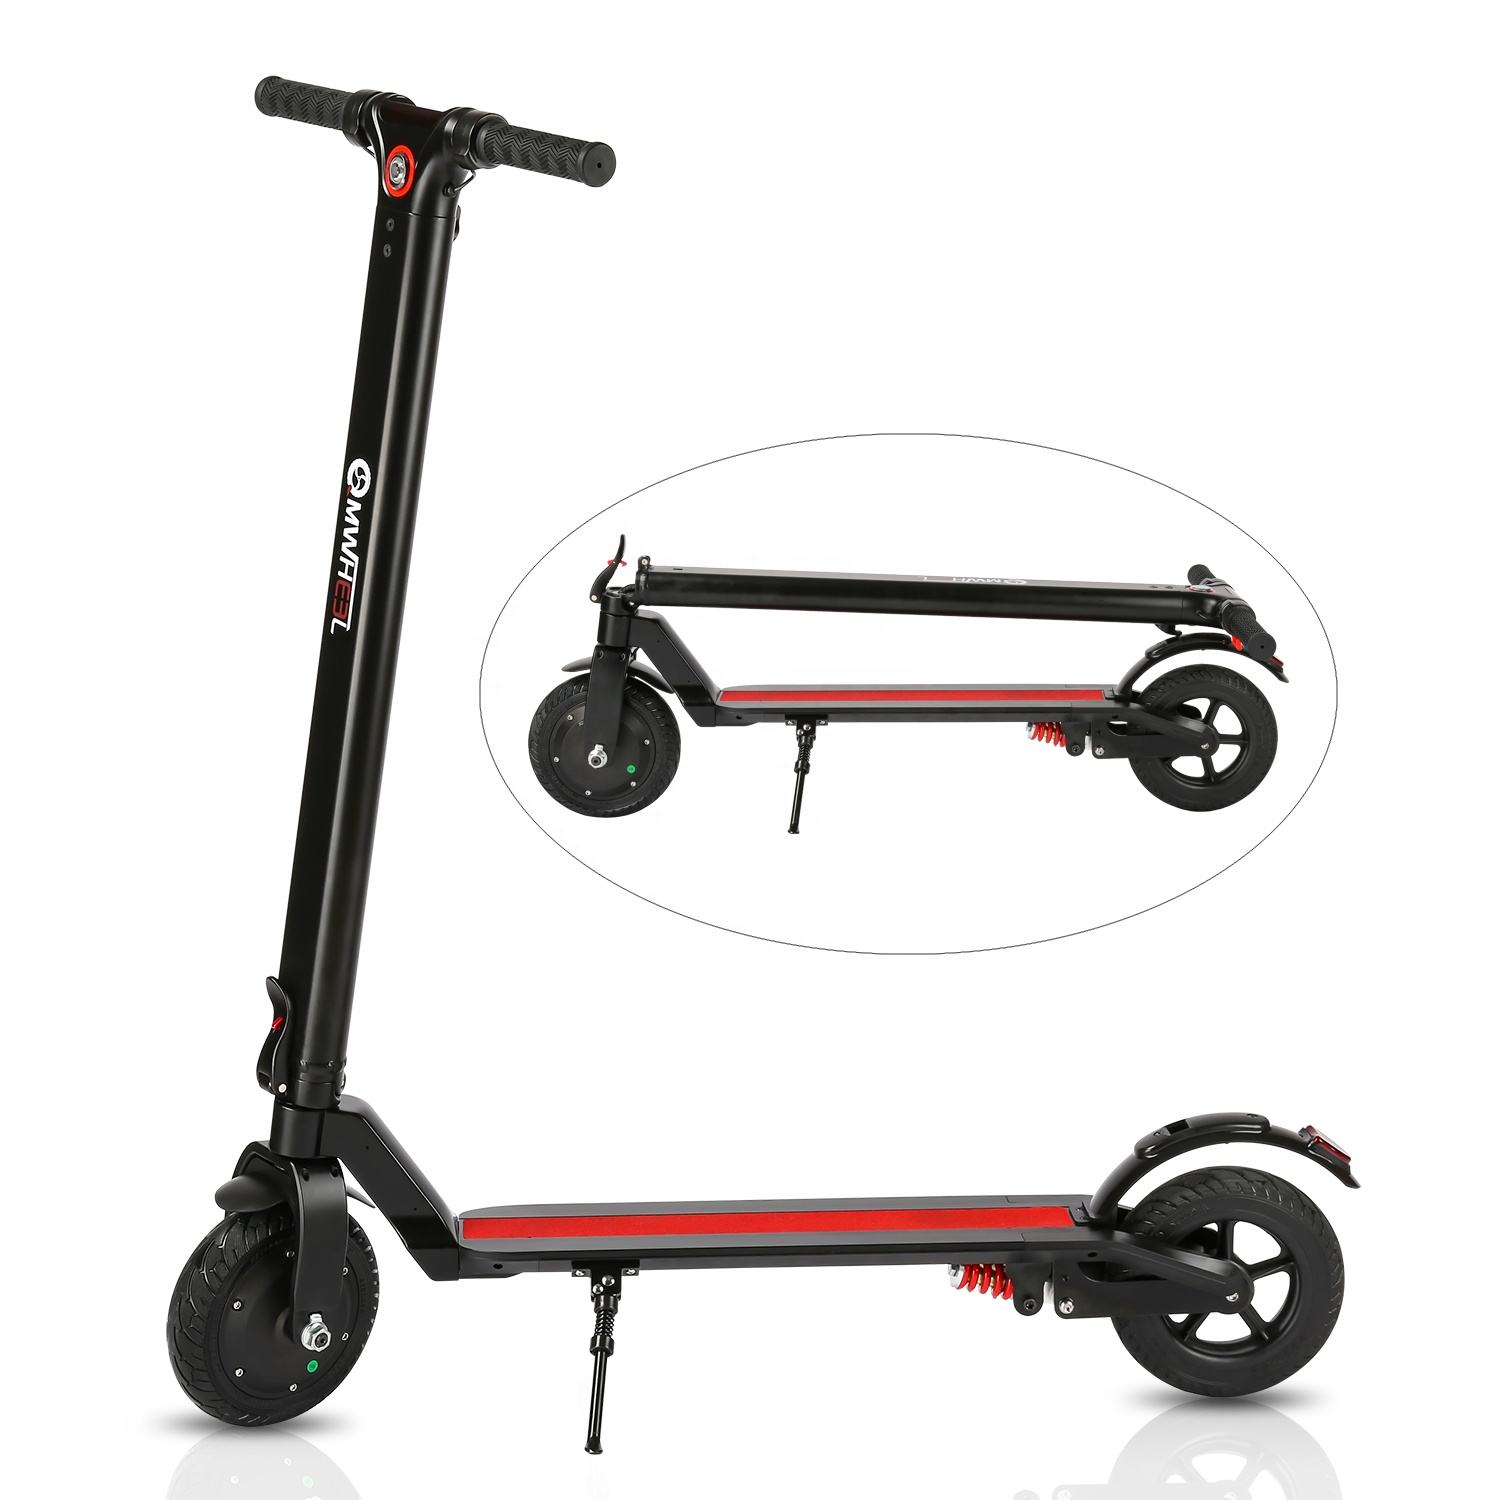 European warehouse free shipping 36V 7.5AH Mini Foldable Smart E-Scooter E Skateboard Adult Electric Scooter